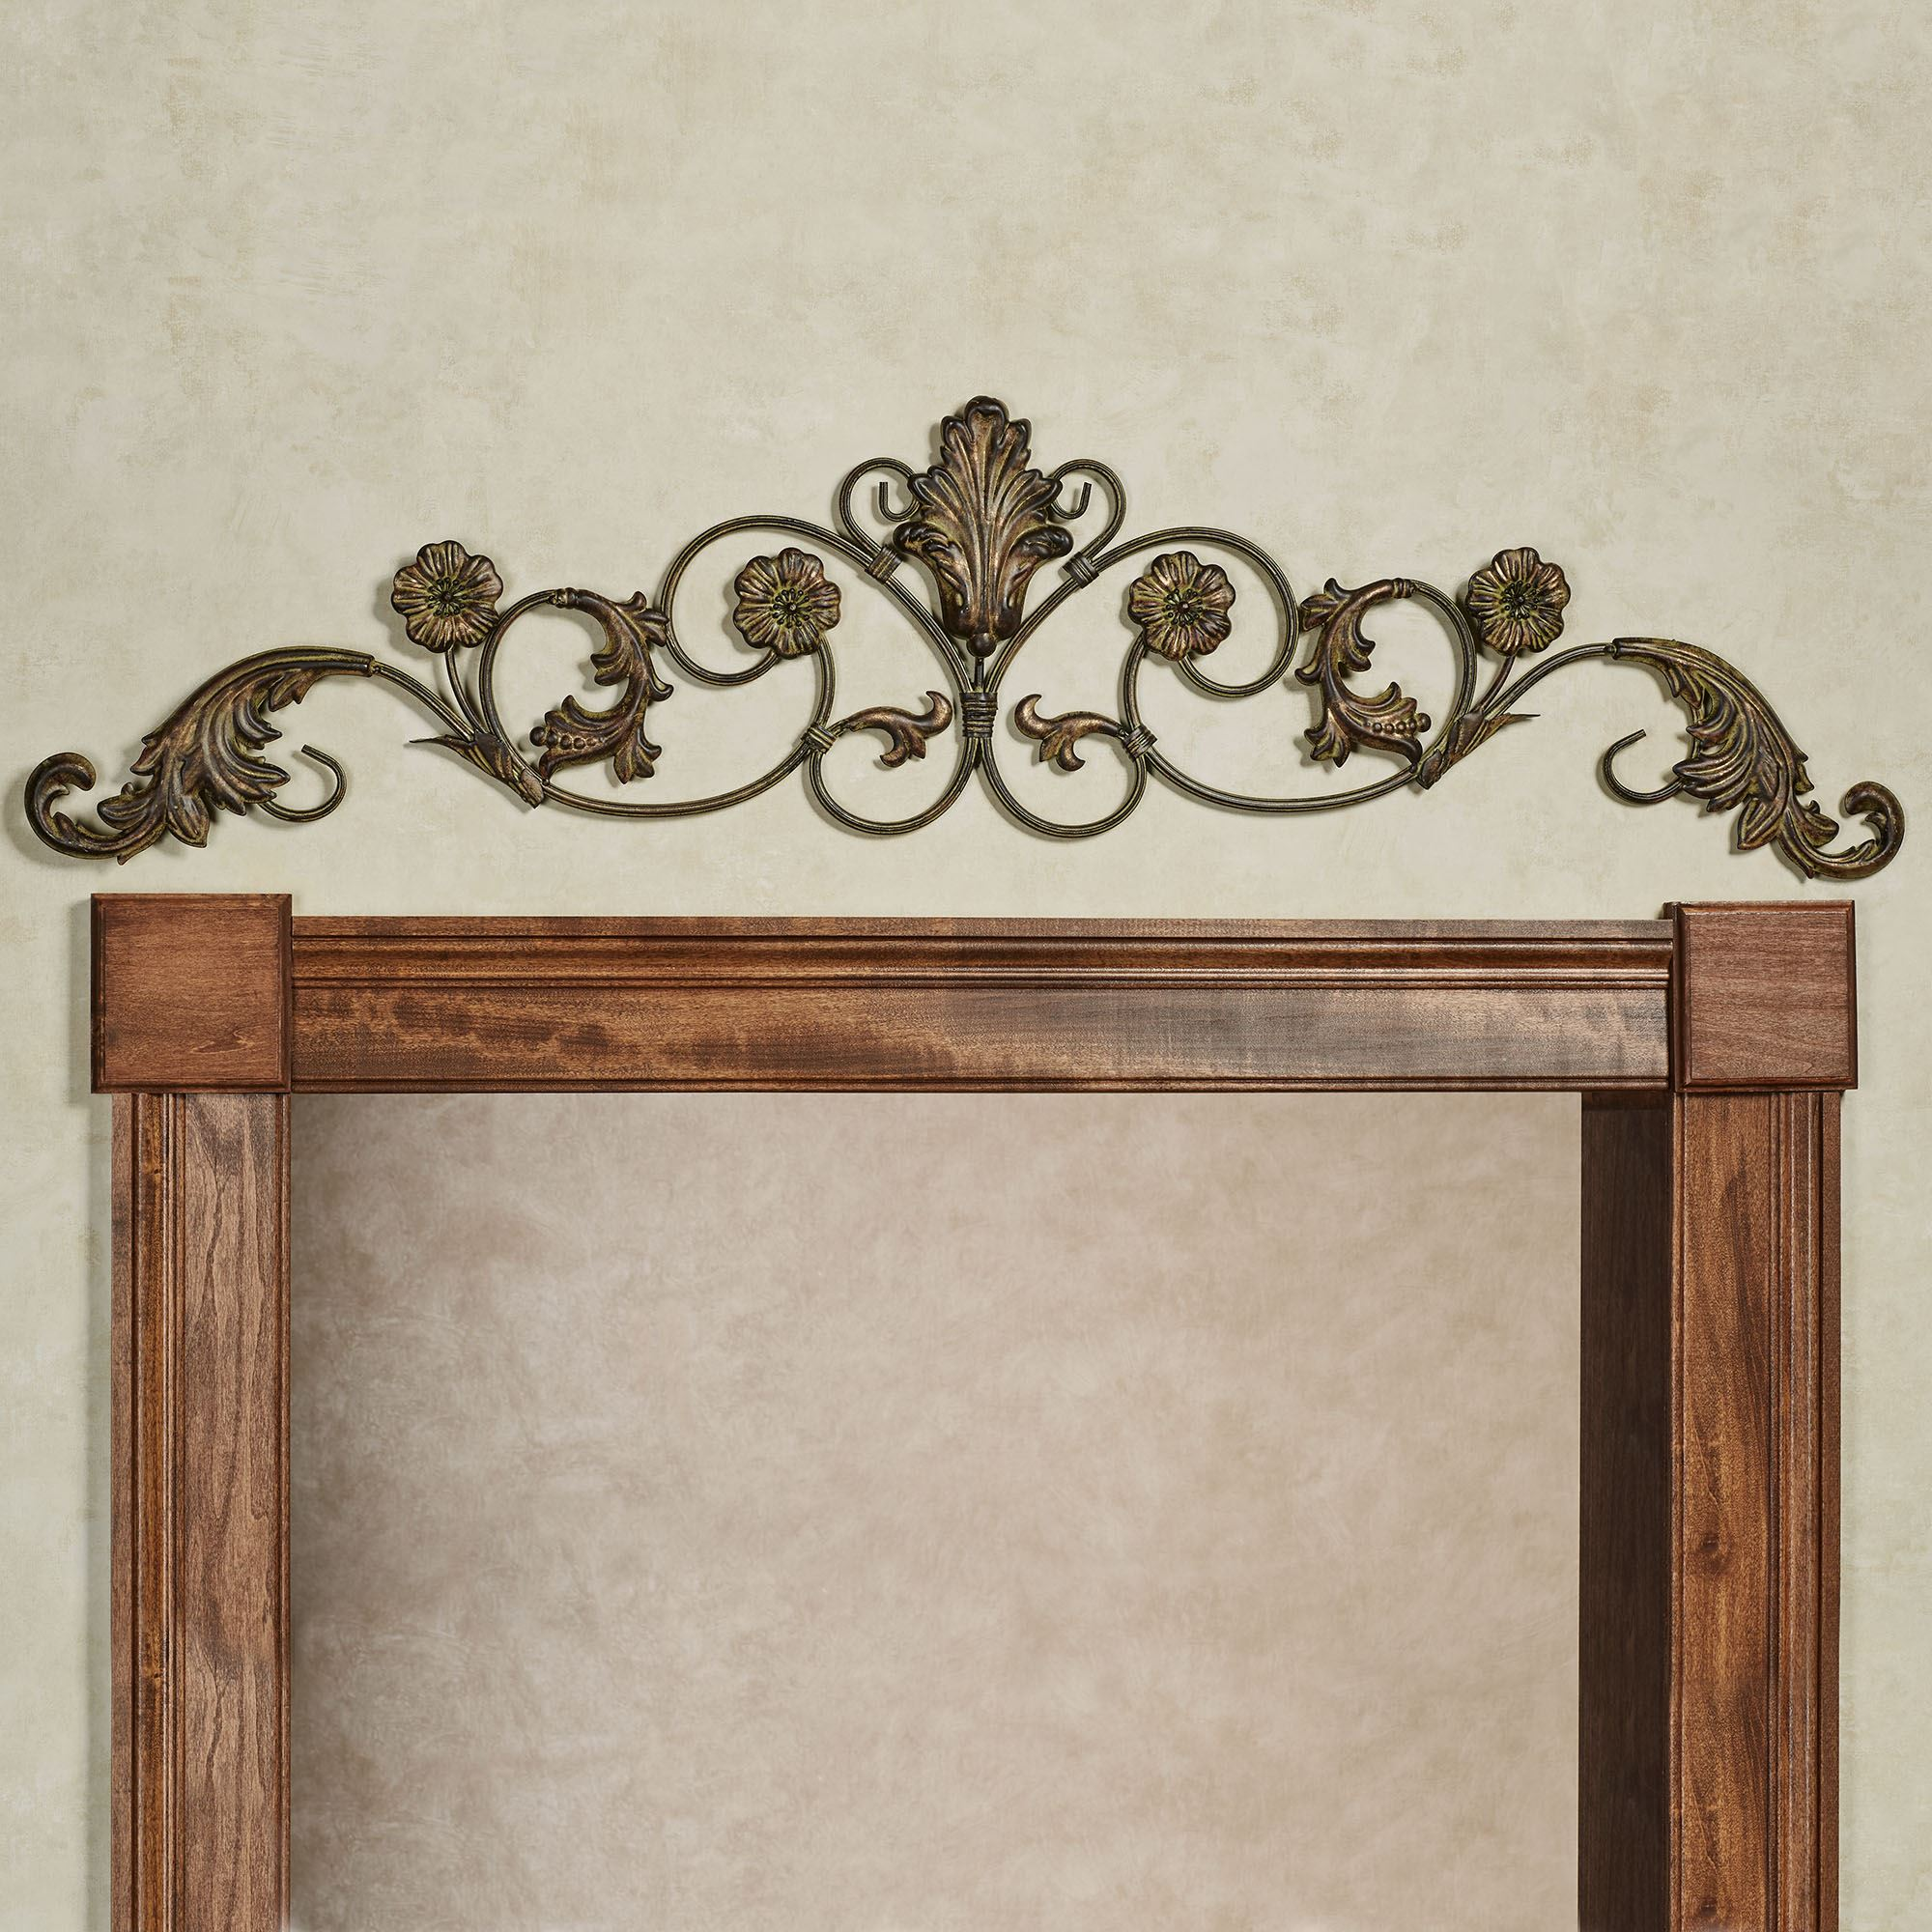 Violetta wrought iron decorative wall topper click to expand amipublicfo Images